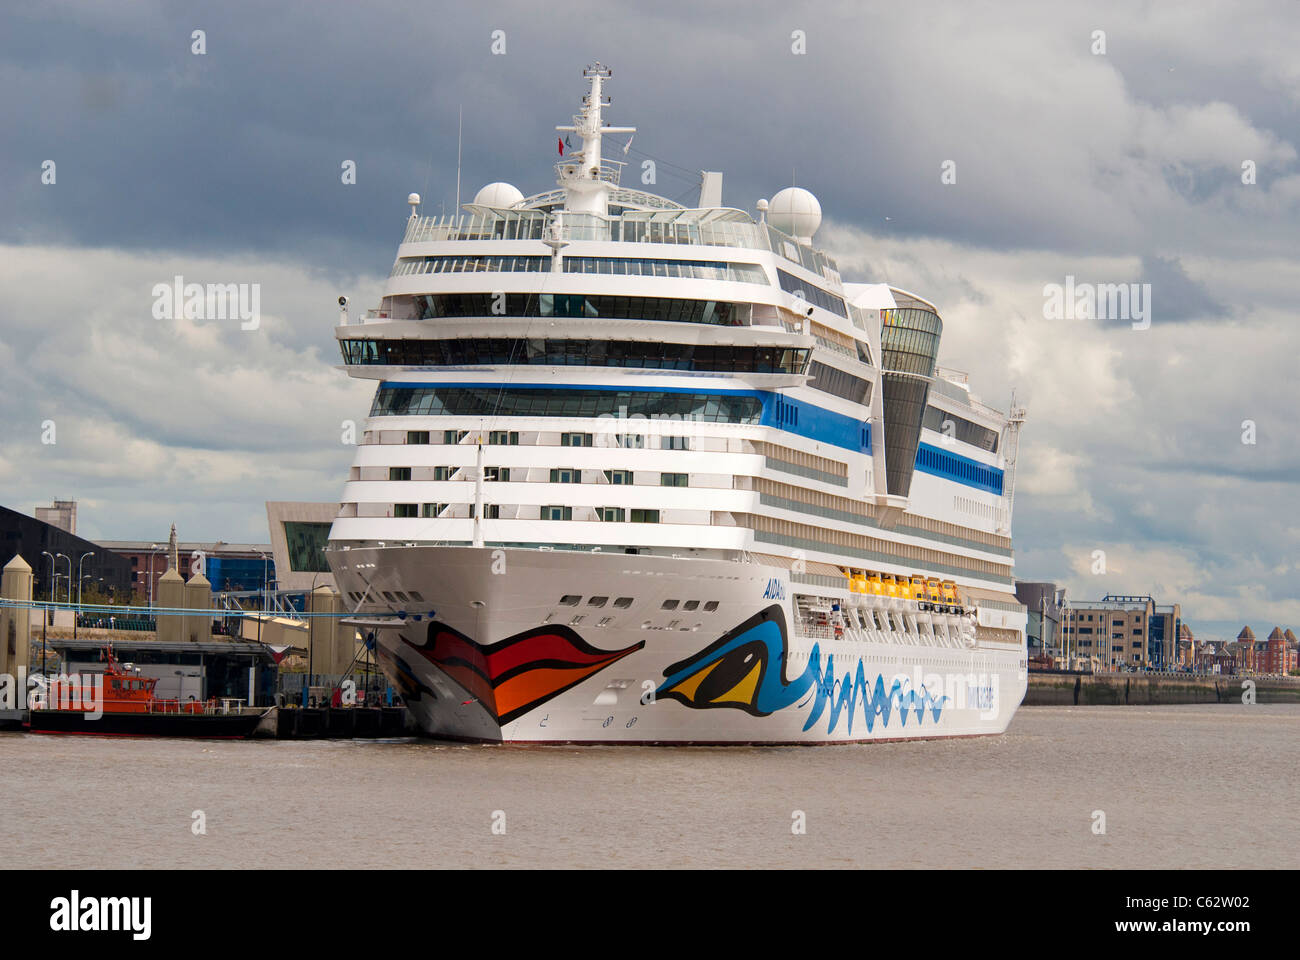 Cruise liner Aidablu berthed at the Liverpool cruise terminal at the Pier Head.  - Stock Image